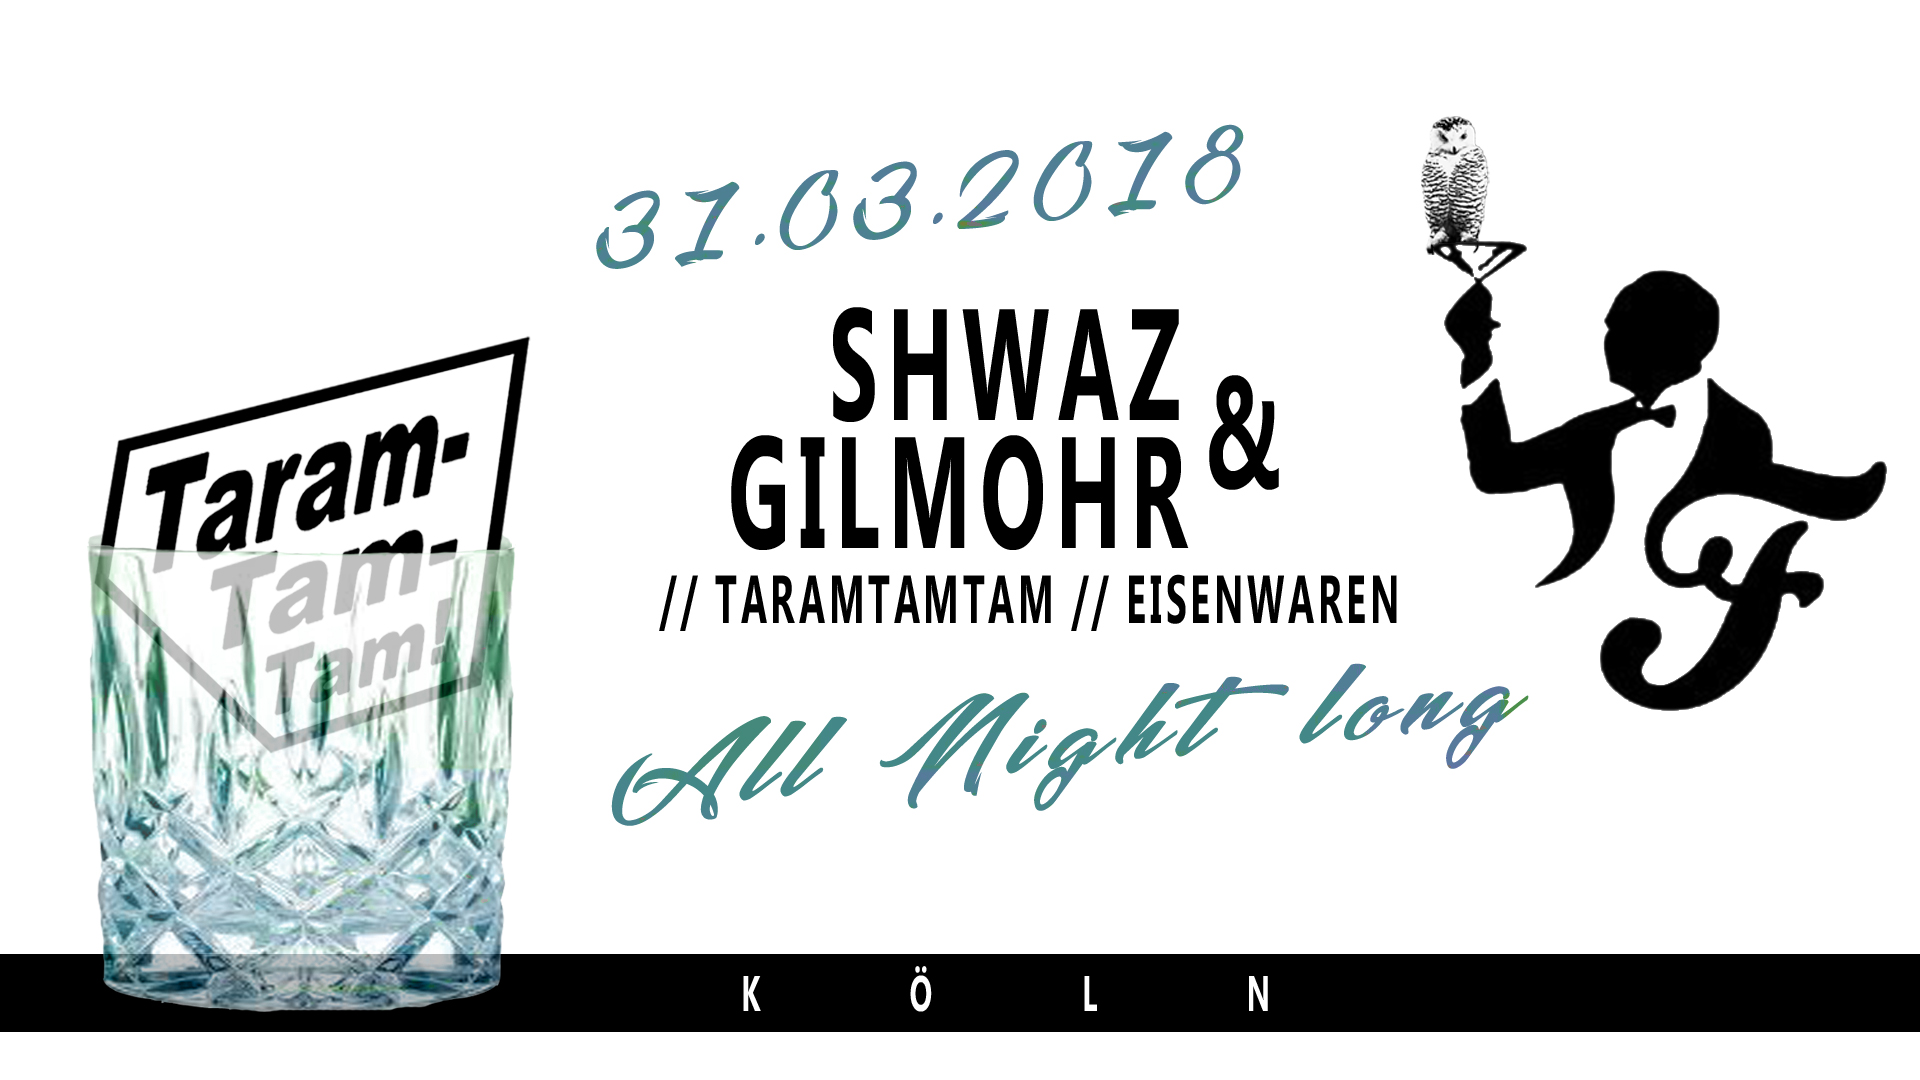 Taramtamtam Eventflyer 31.03.2018 - Friesen Bar - Köln